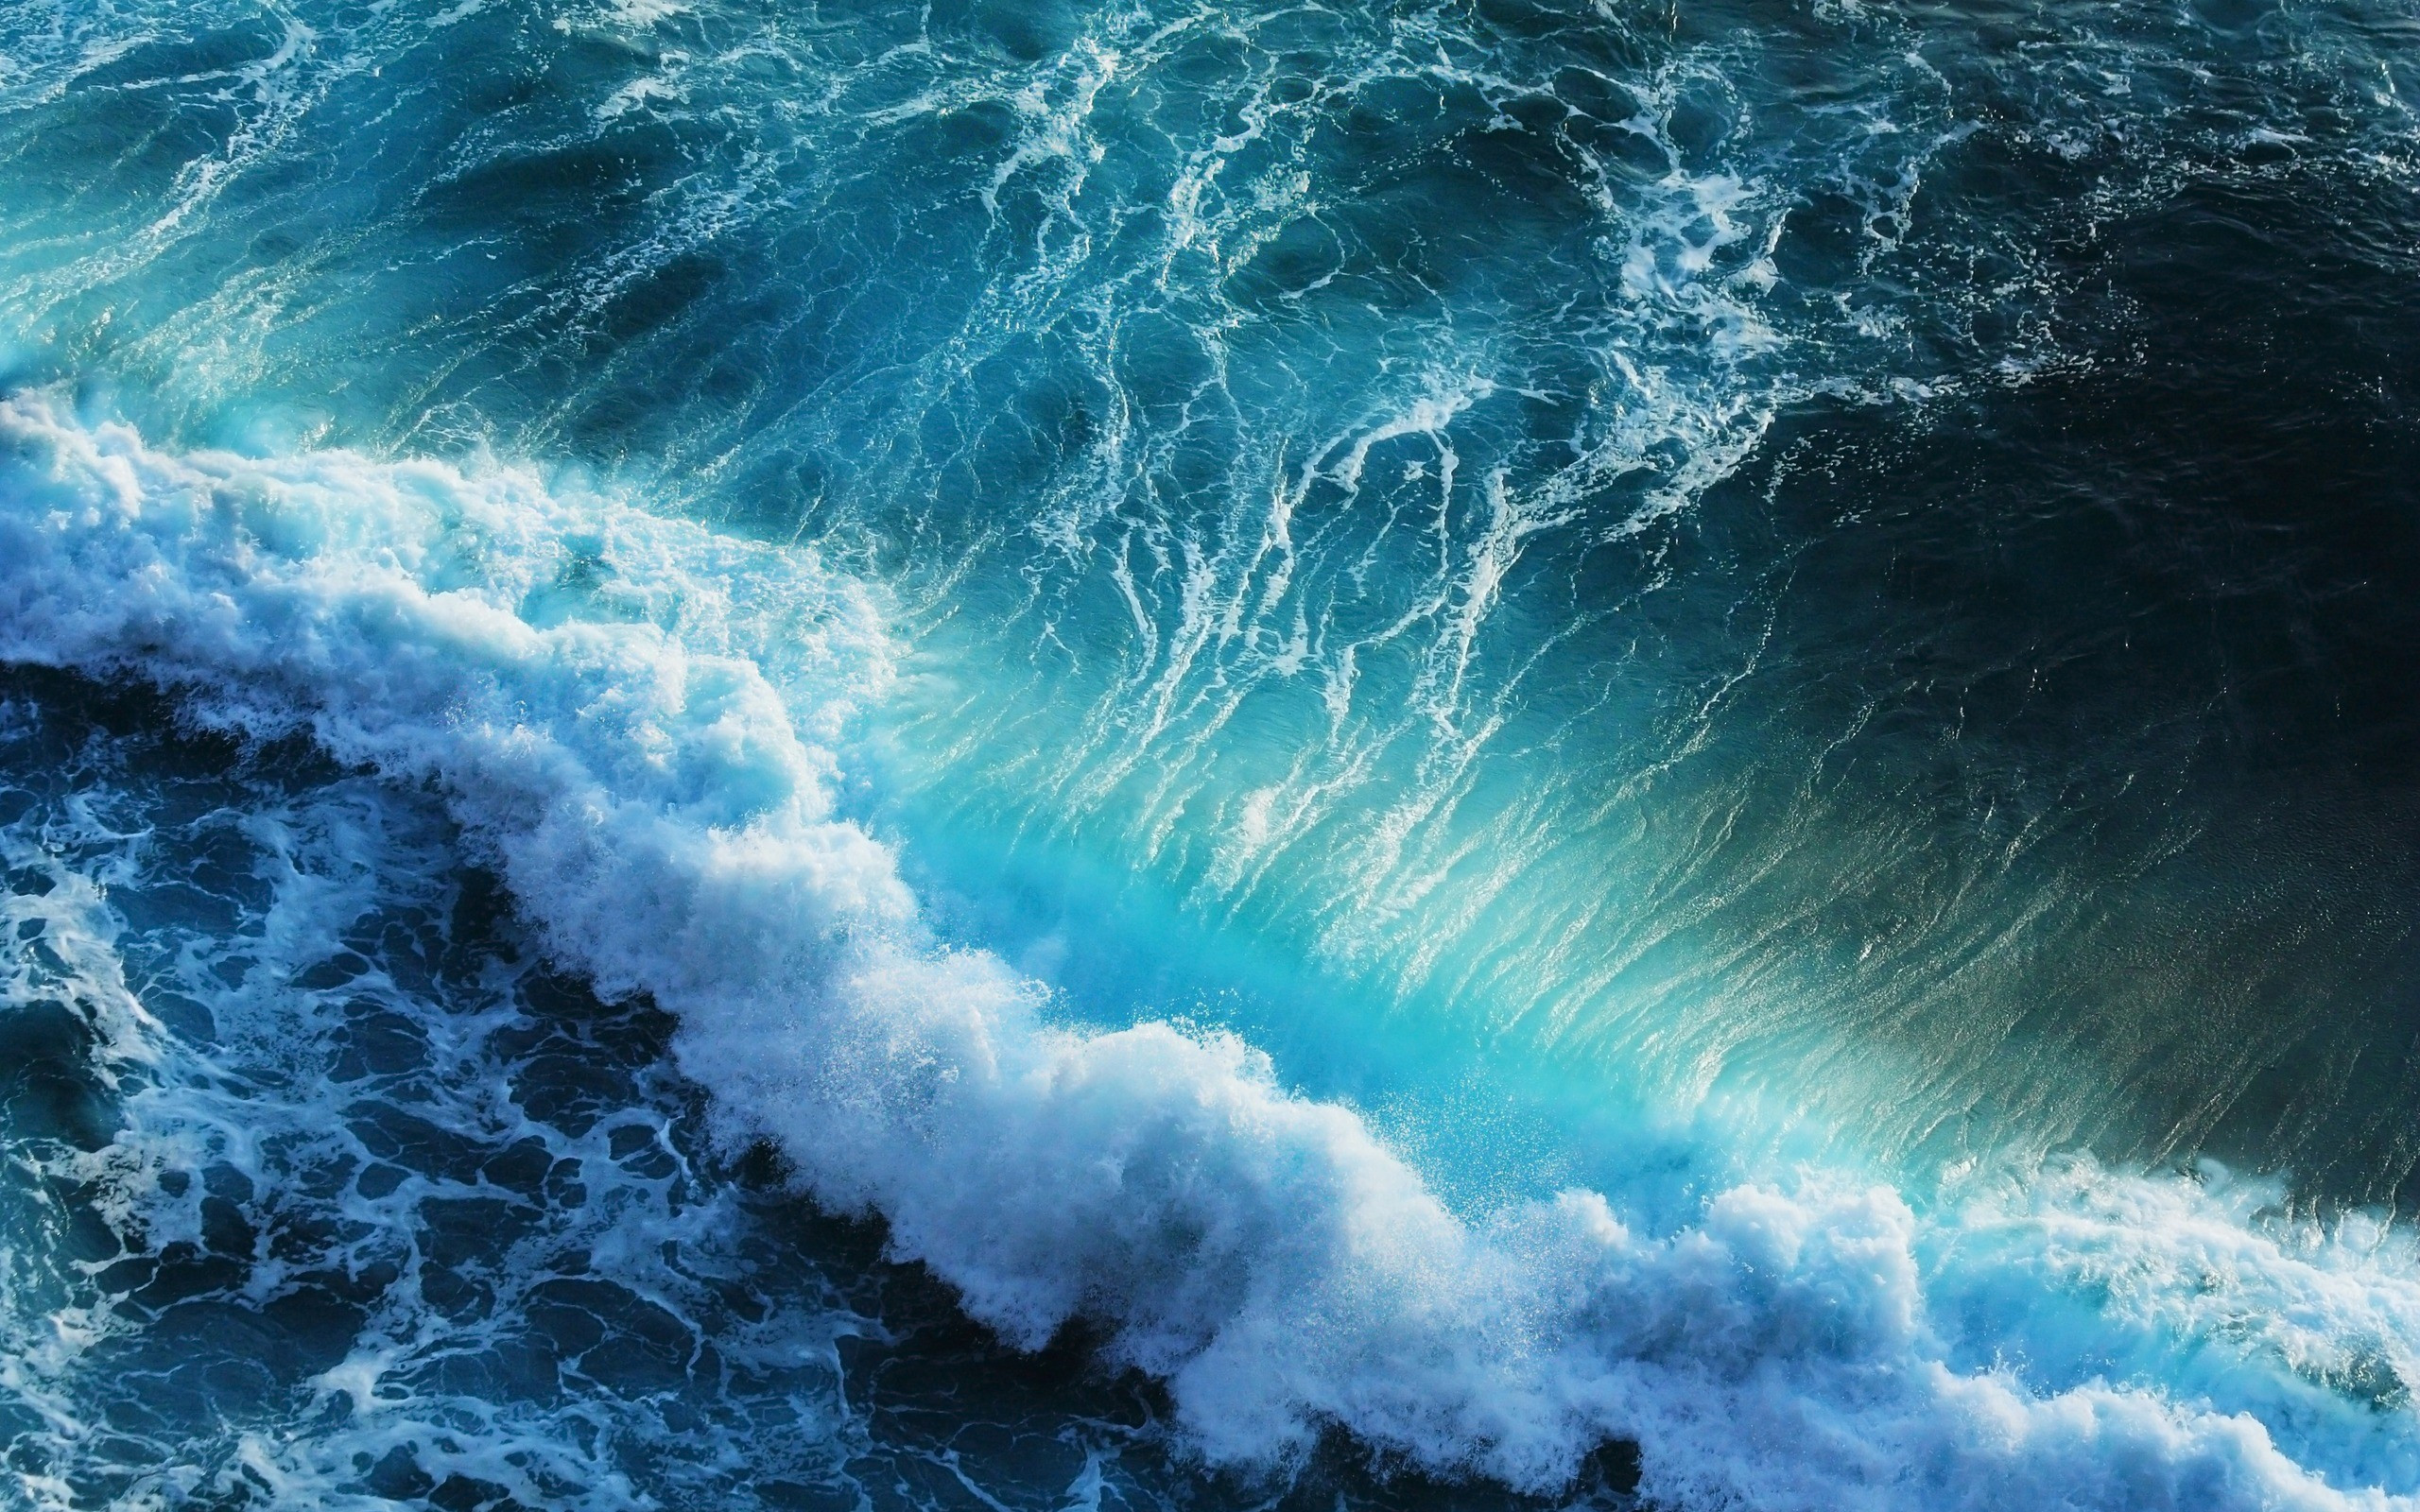 2560x1600 Ocean waves wallpaper HD.